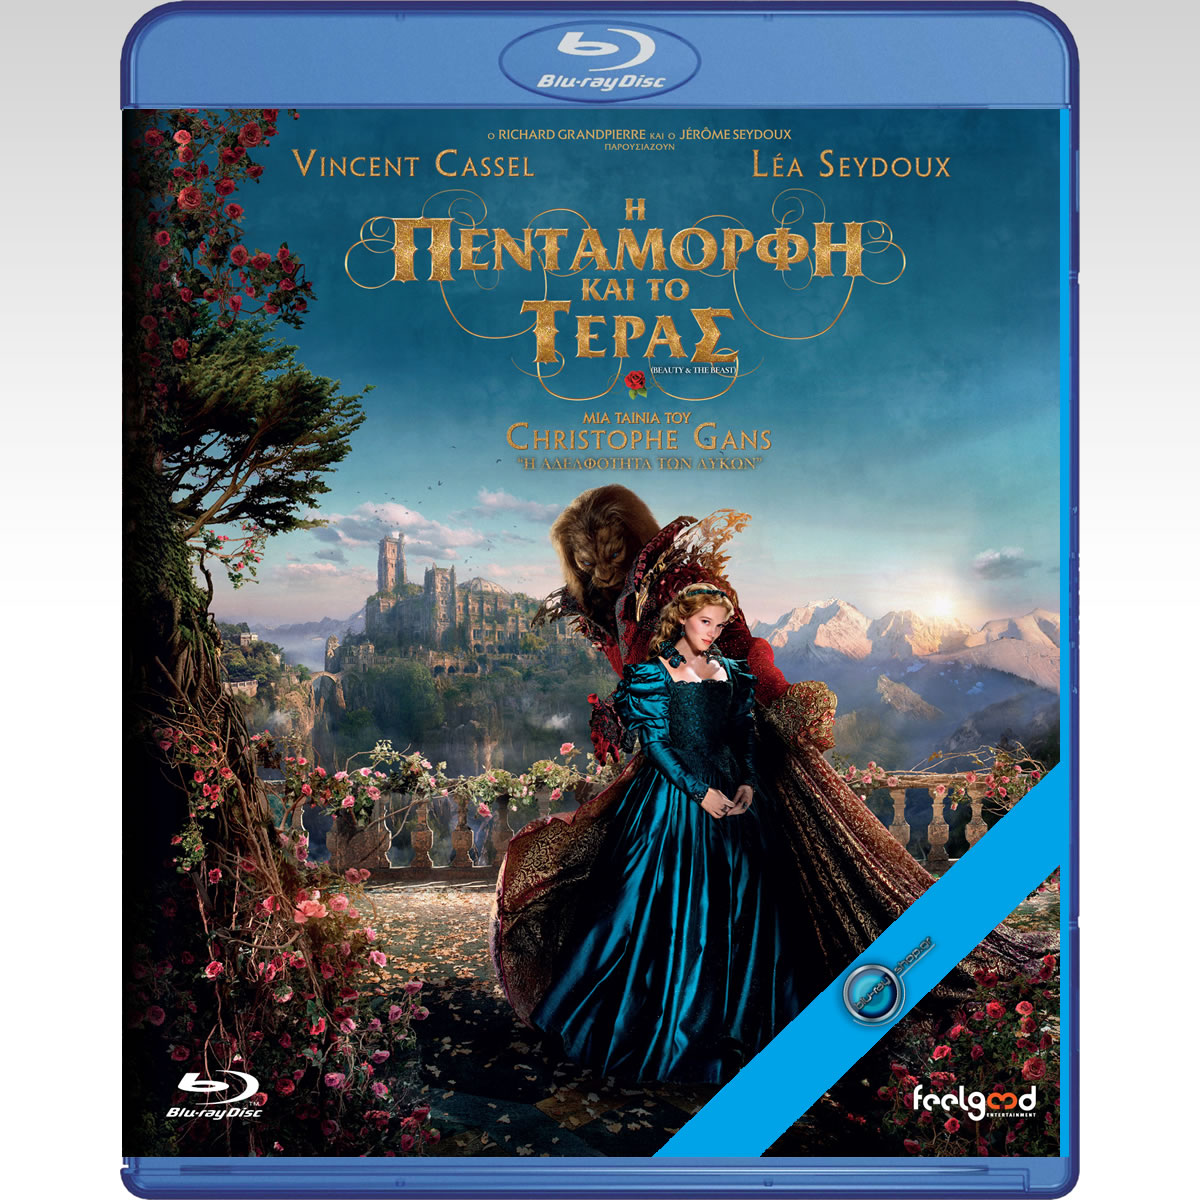 THE BEAUTY AND THE BEAST - LA BELLE ET LA BETE - Η ΠΕΝΤΑΜΟΡΦΗ ΚΑΙ ΤΟ ΤΕΡΑΣ [2014] (BLU-RAY)